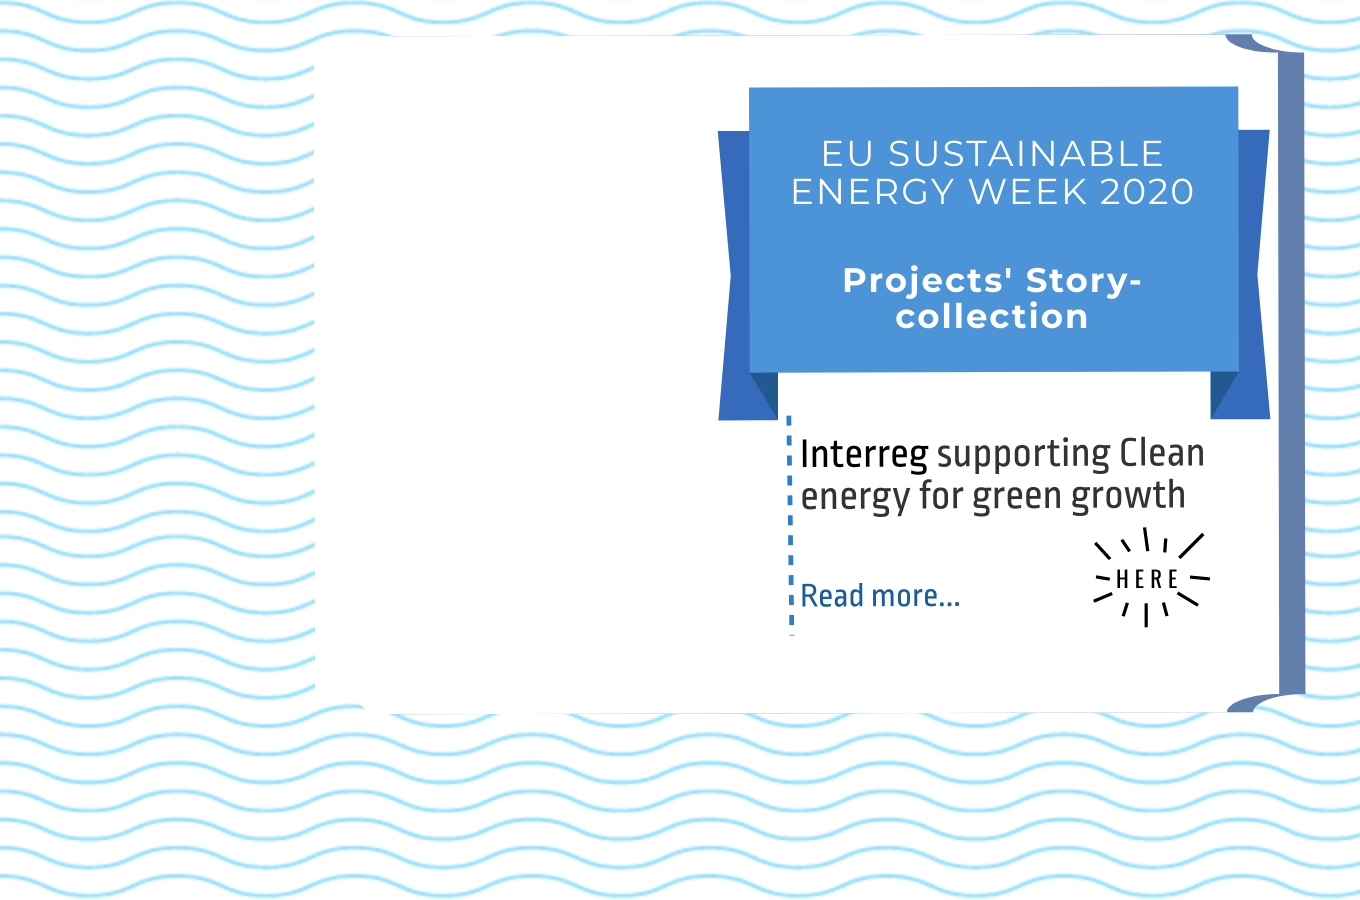 Interreg Italy-Croatia Programme supporting clean energy for green growth